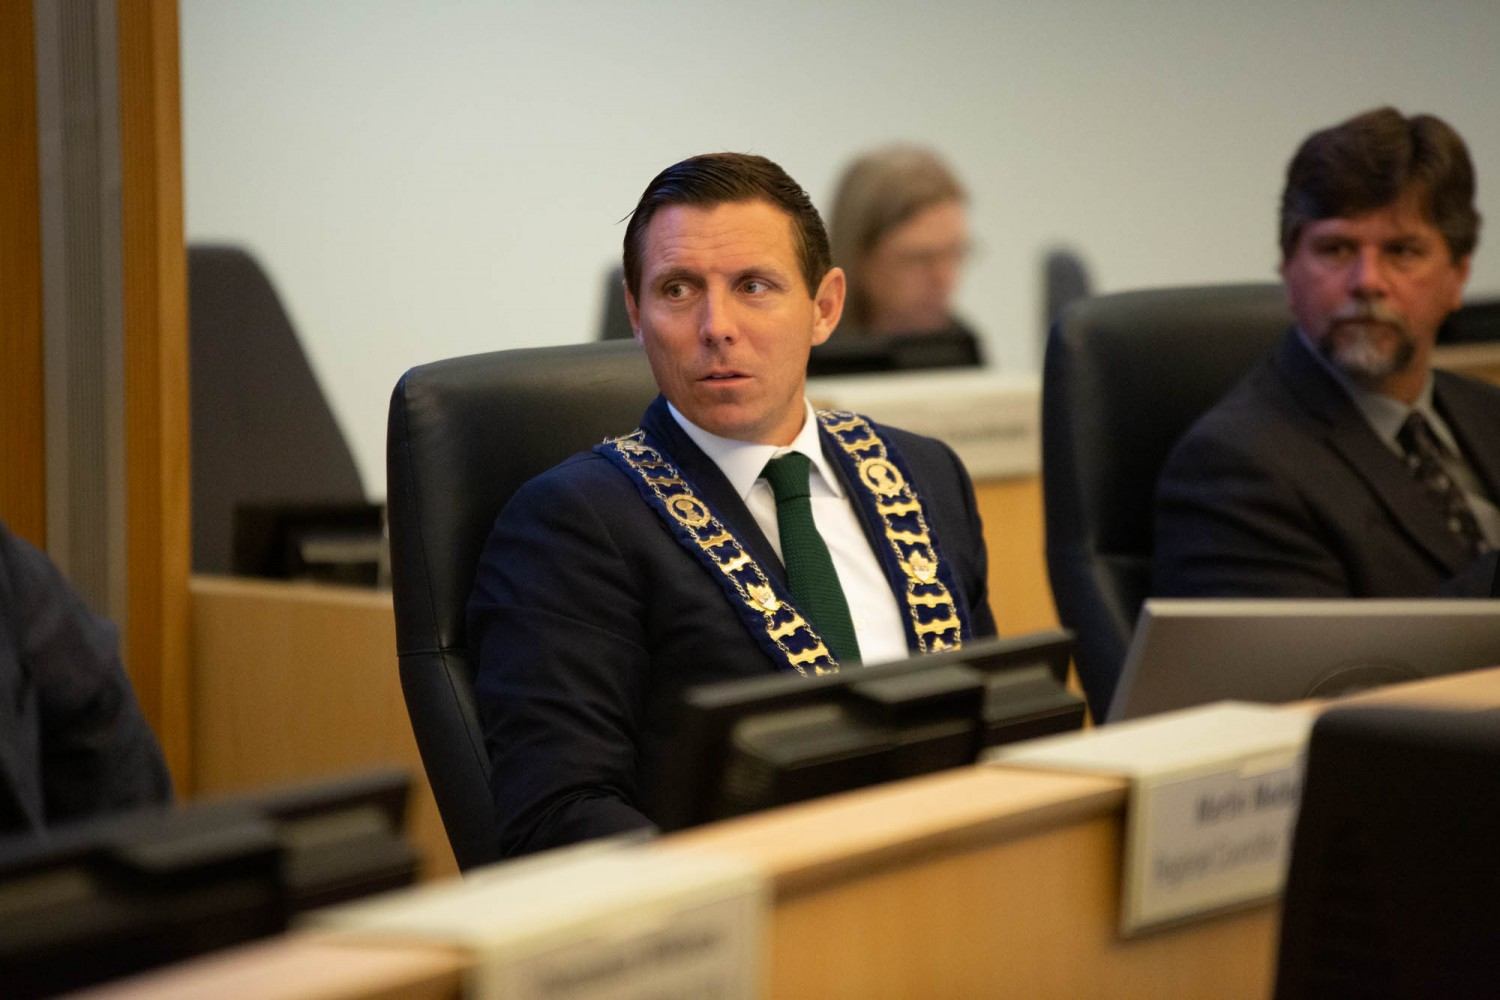 Brampton isn't getting a fair share of funding, but Patrick Brown's tax freezes might be making things worse